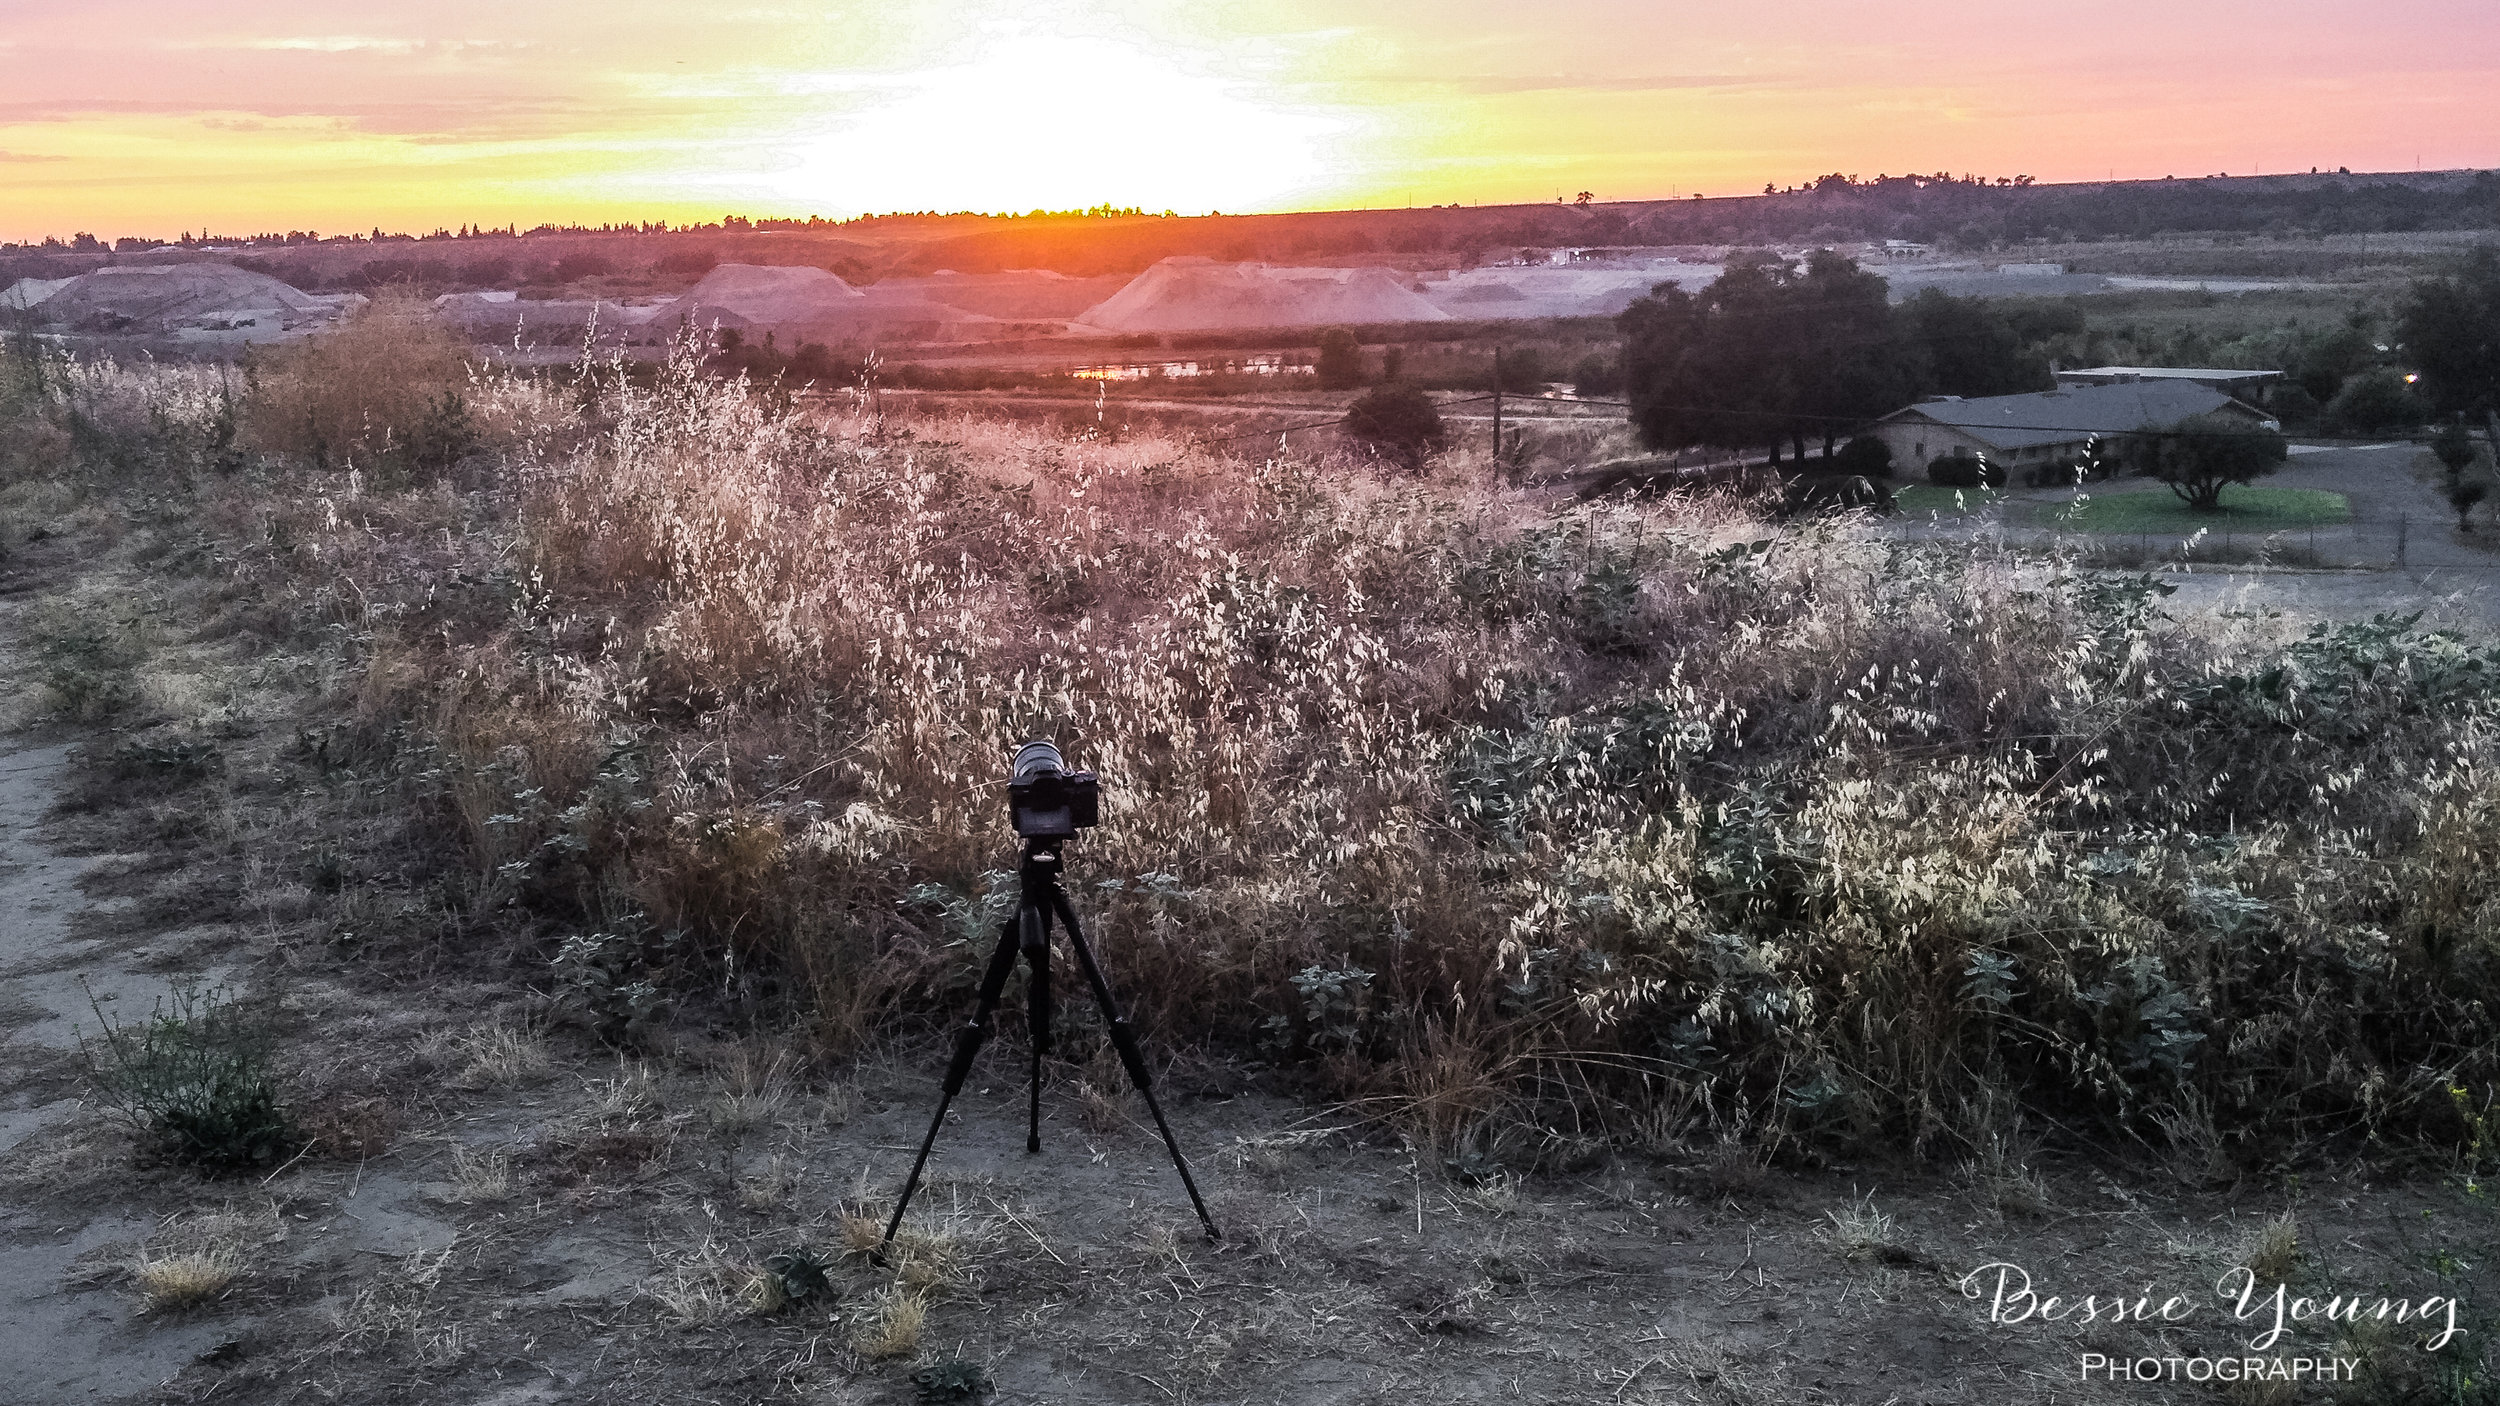 Sunset Time Lapse Sony A7Rii - Woodward Park, Fresno- Bessie Young Photography-4.jpg